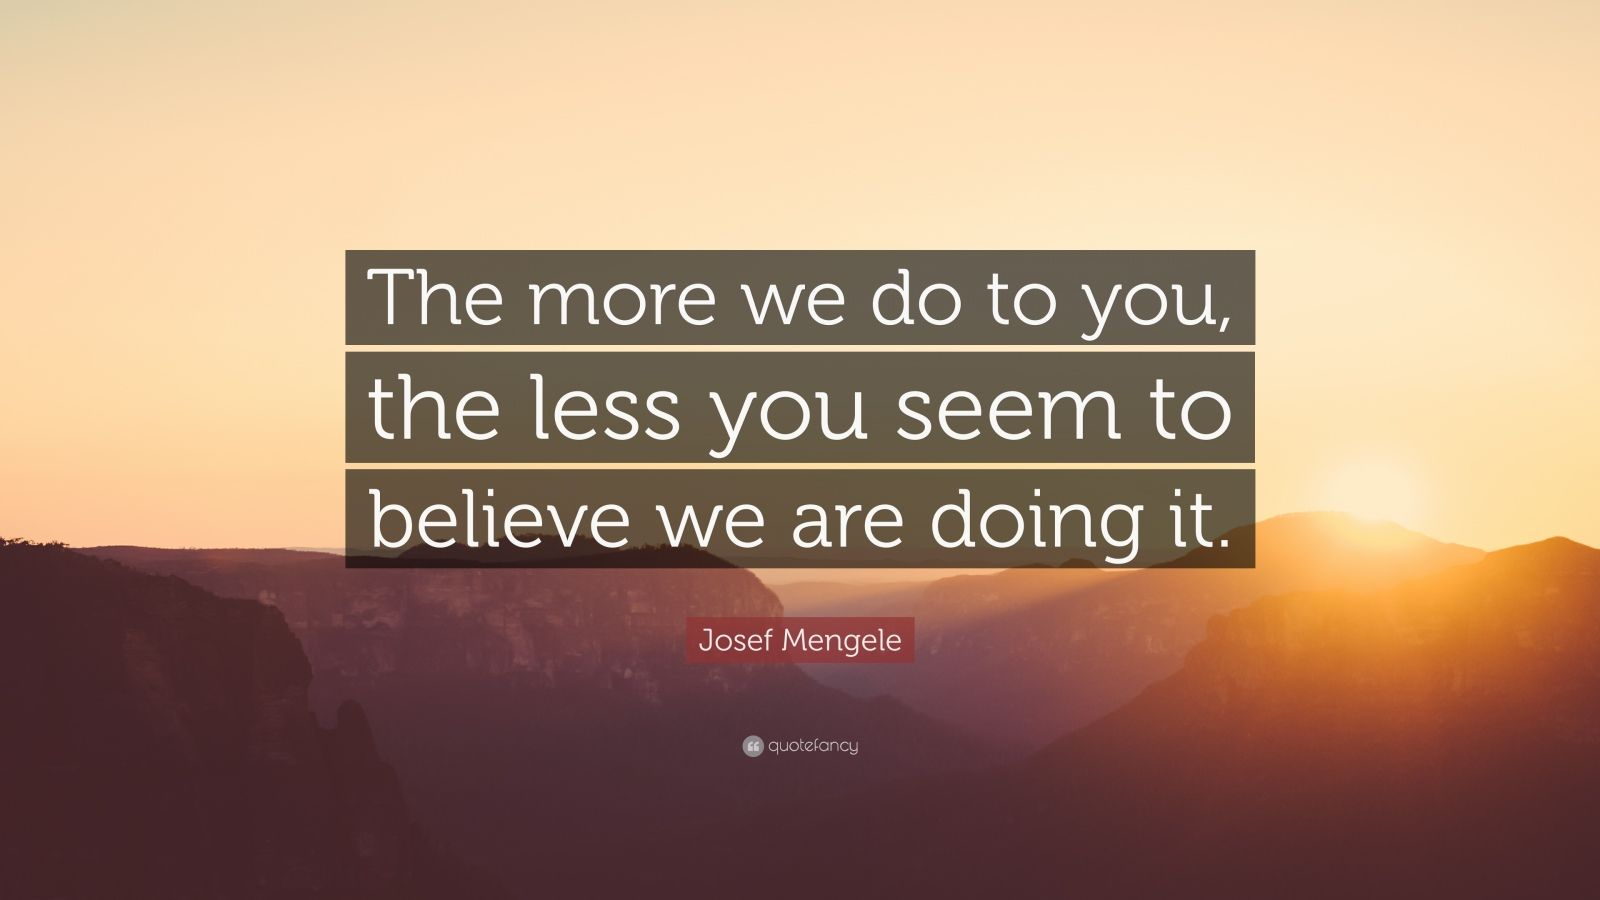 Swami Vivekananda Quotes Wallpaper Josef Mengele Quote The More We Do To You The Less You